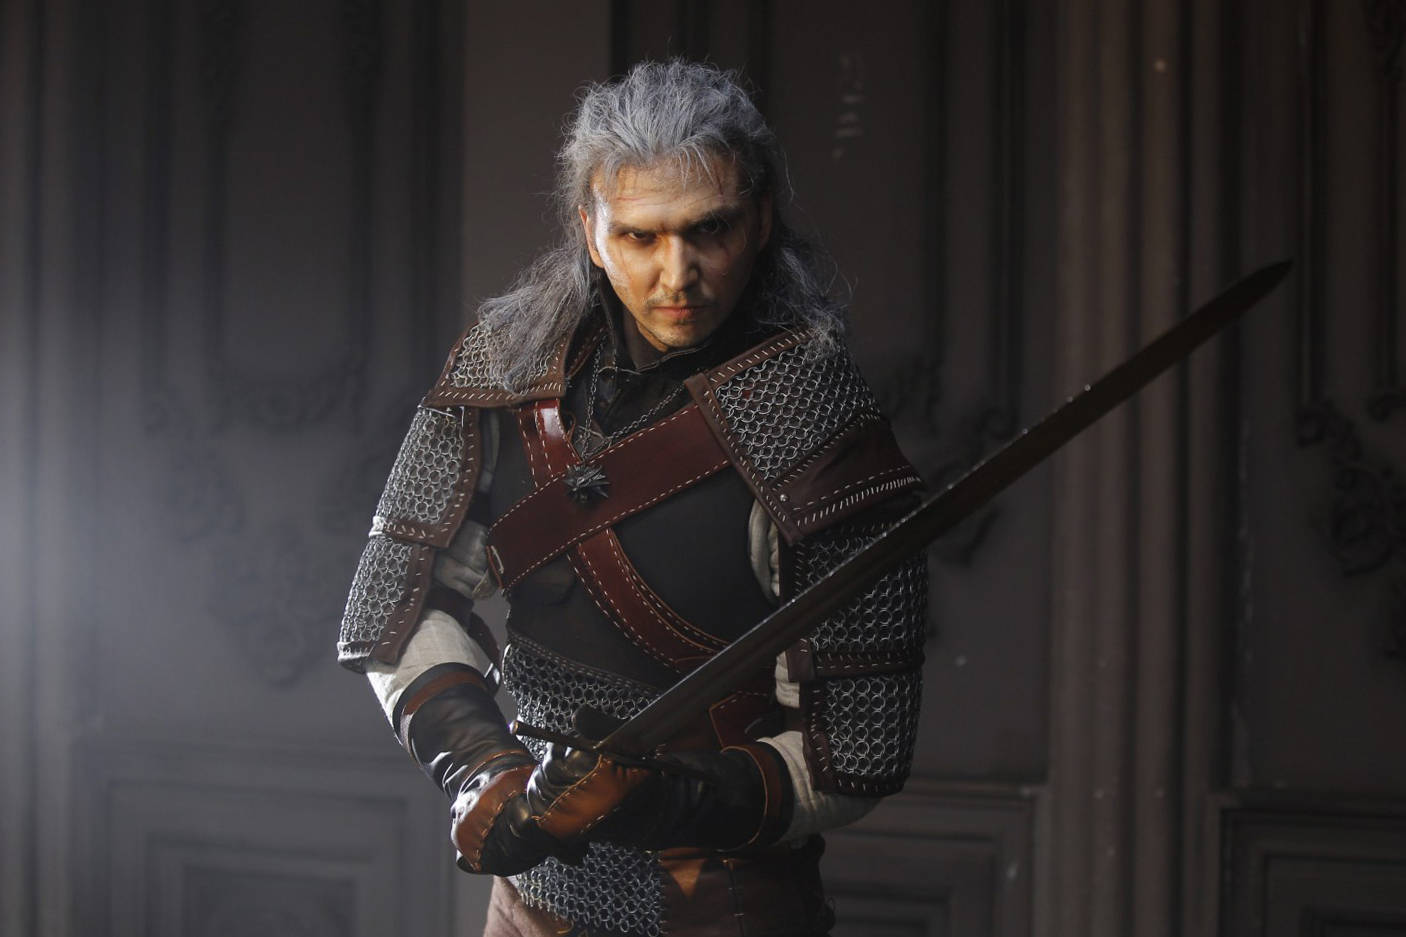 witcher 3 geralt cosplay costume for order leatherwork